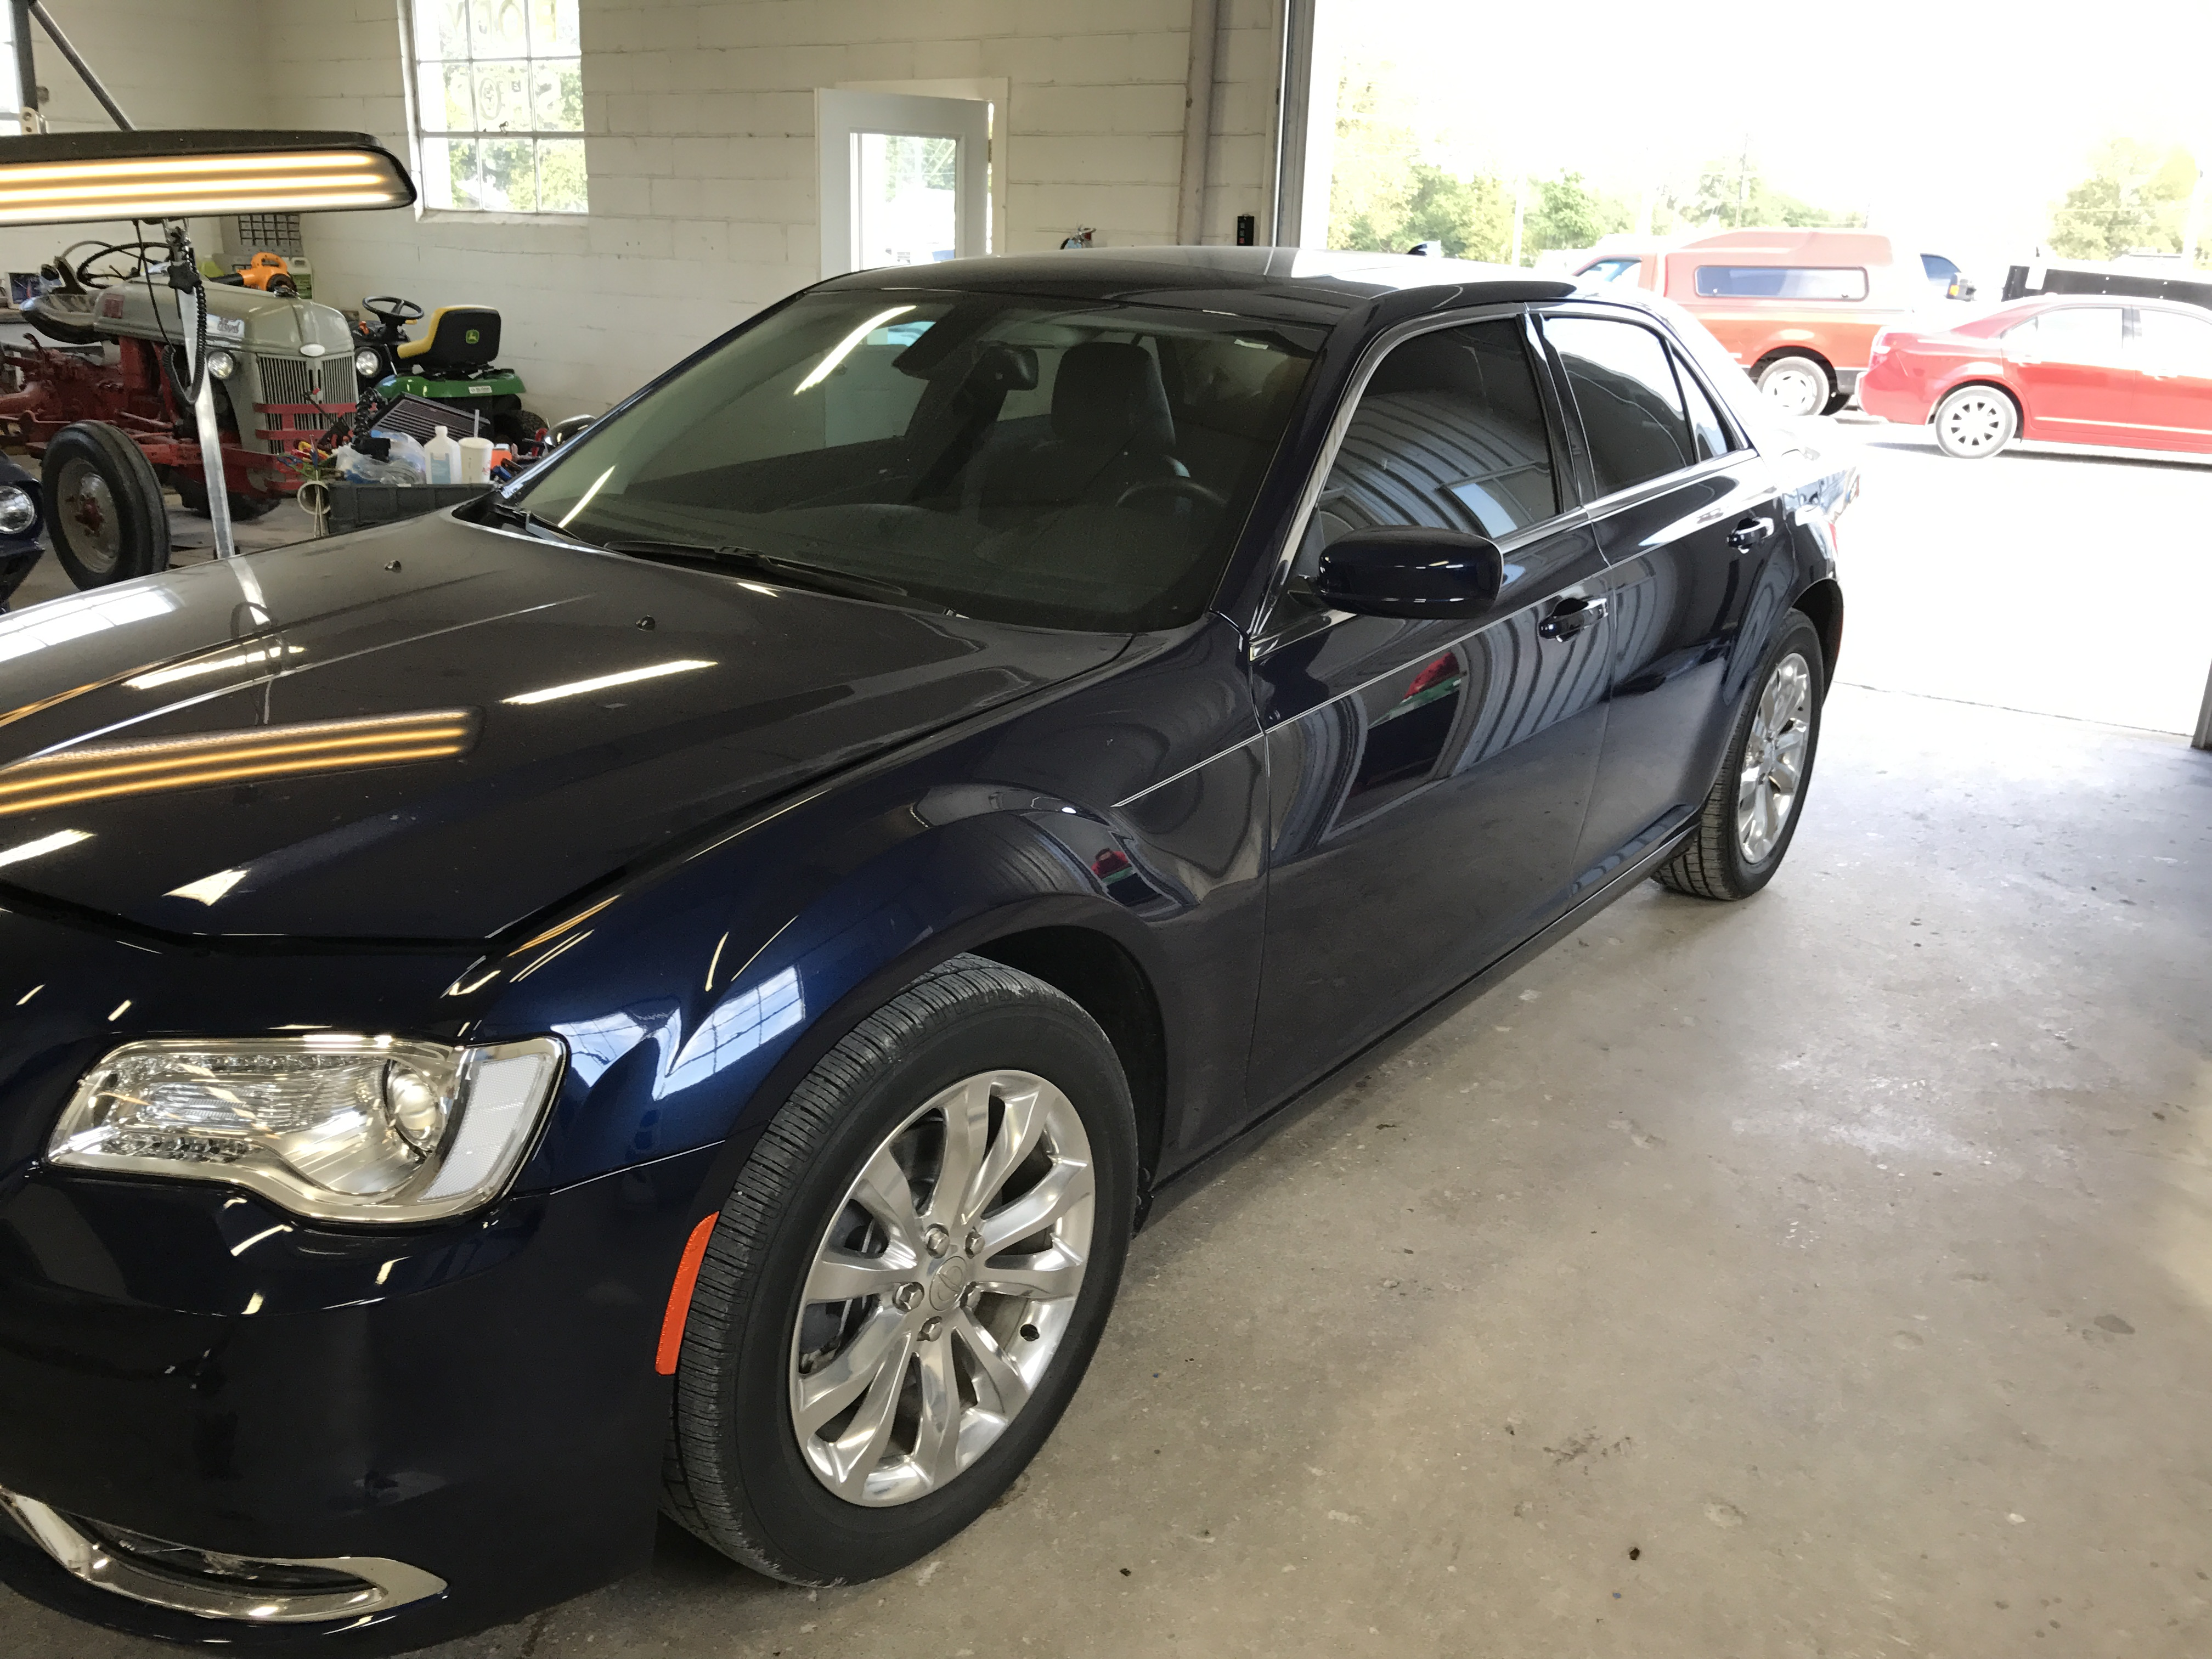 2016 Chrysler 300 Paintless Dent Removal, Springfield, IL. Dent Repair mobile dent removal, http://217dent.com